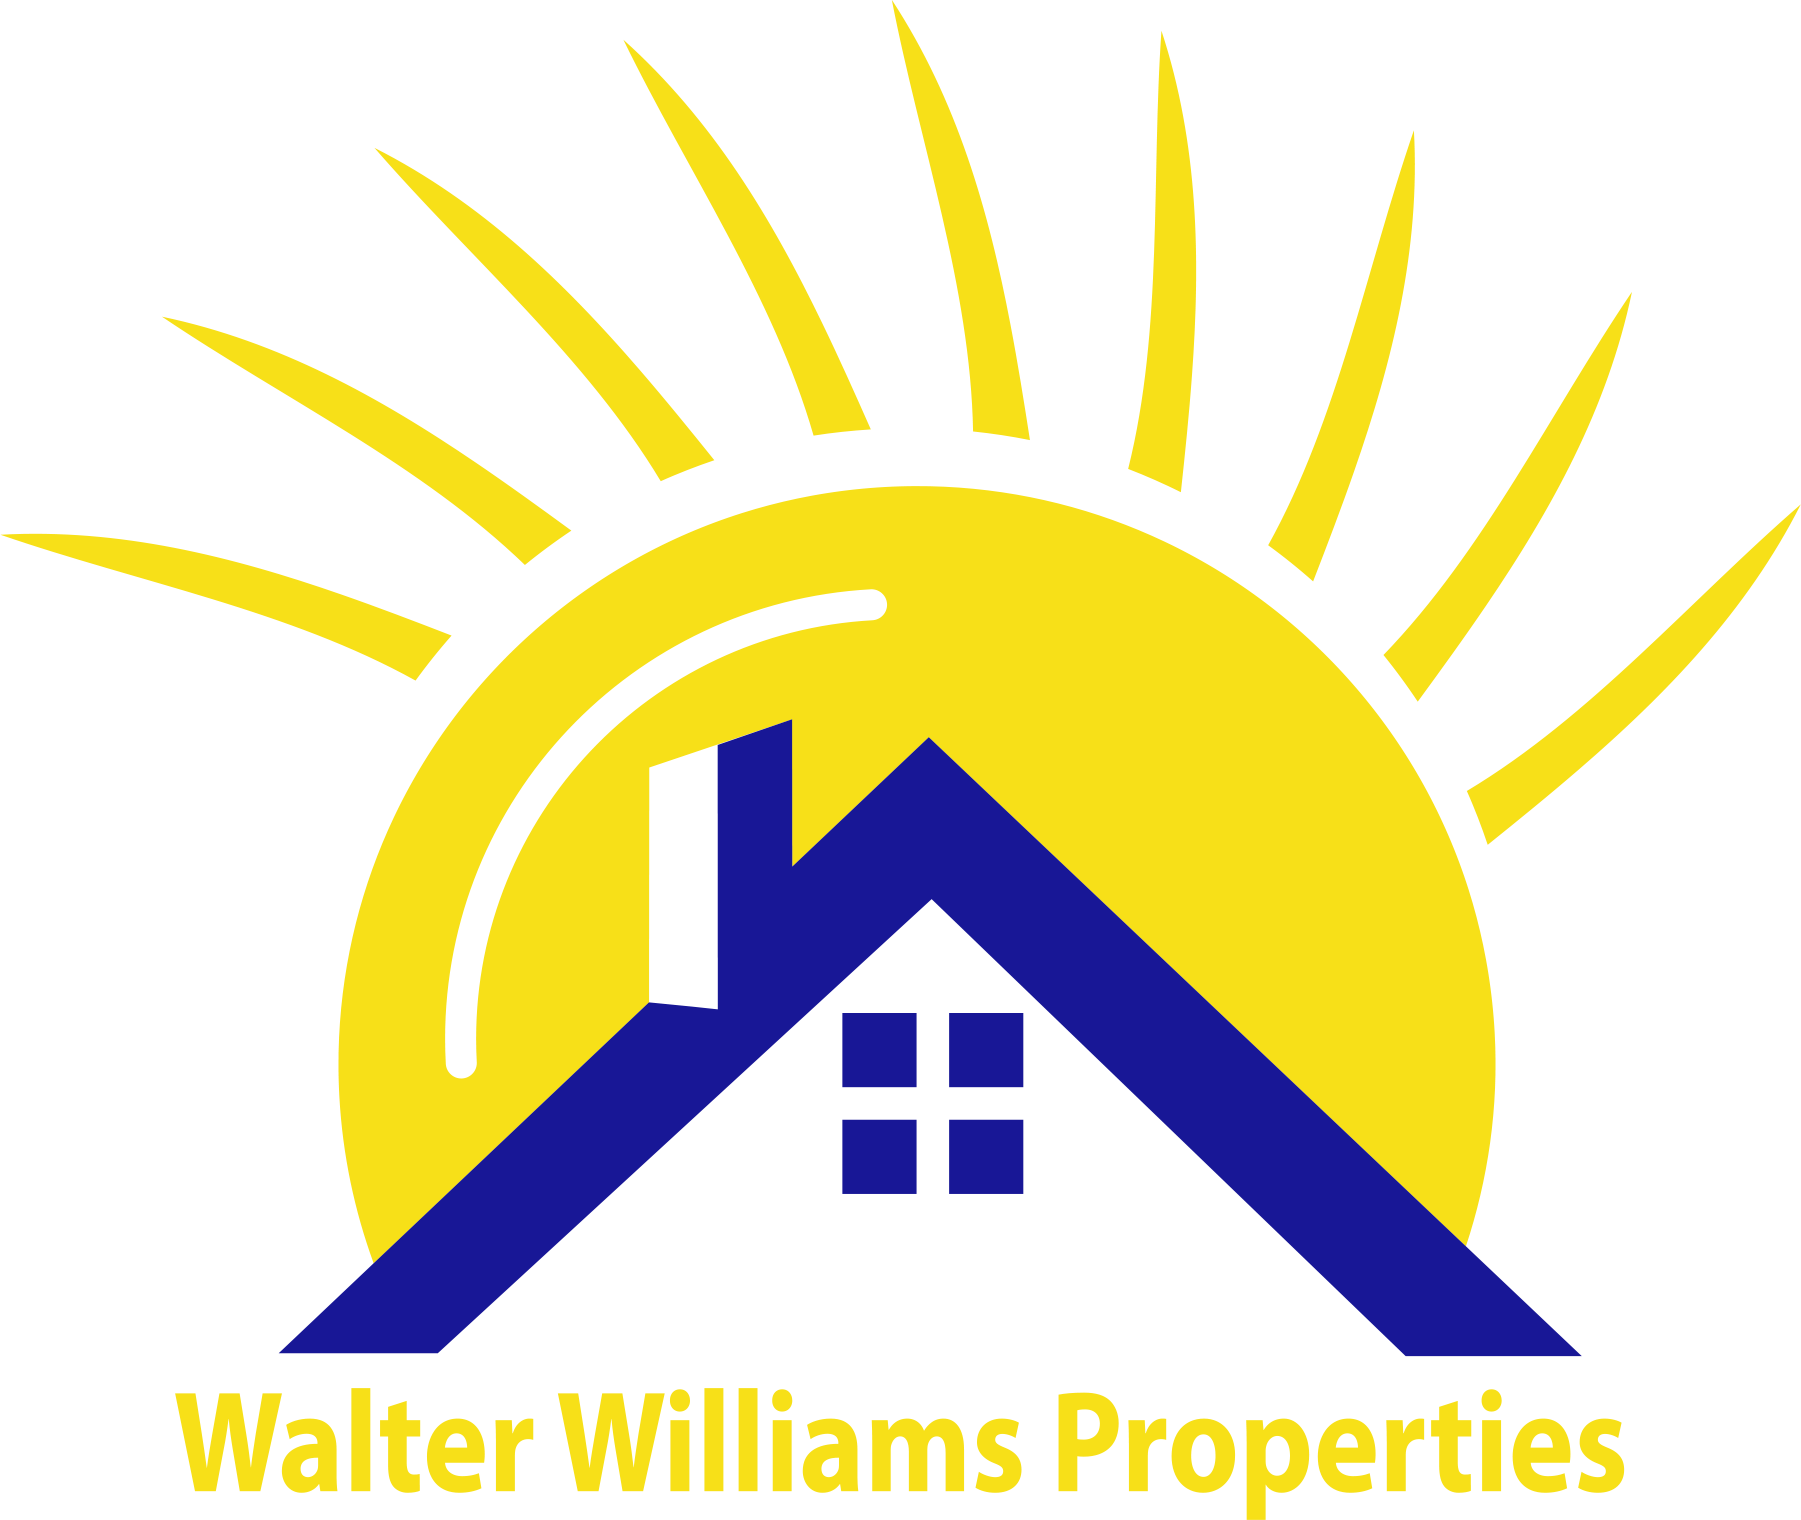 Reality Companies That Rent Homes: Walter Williams Rentals And Property Management